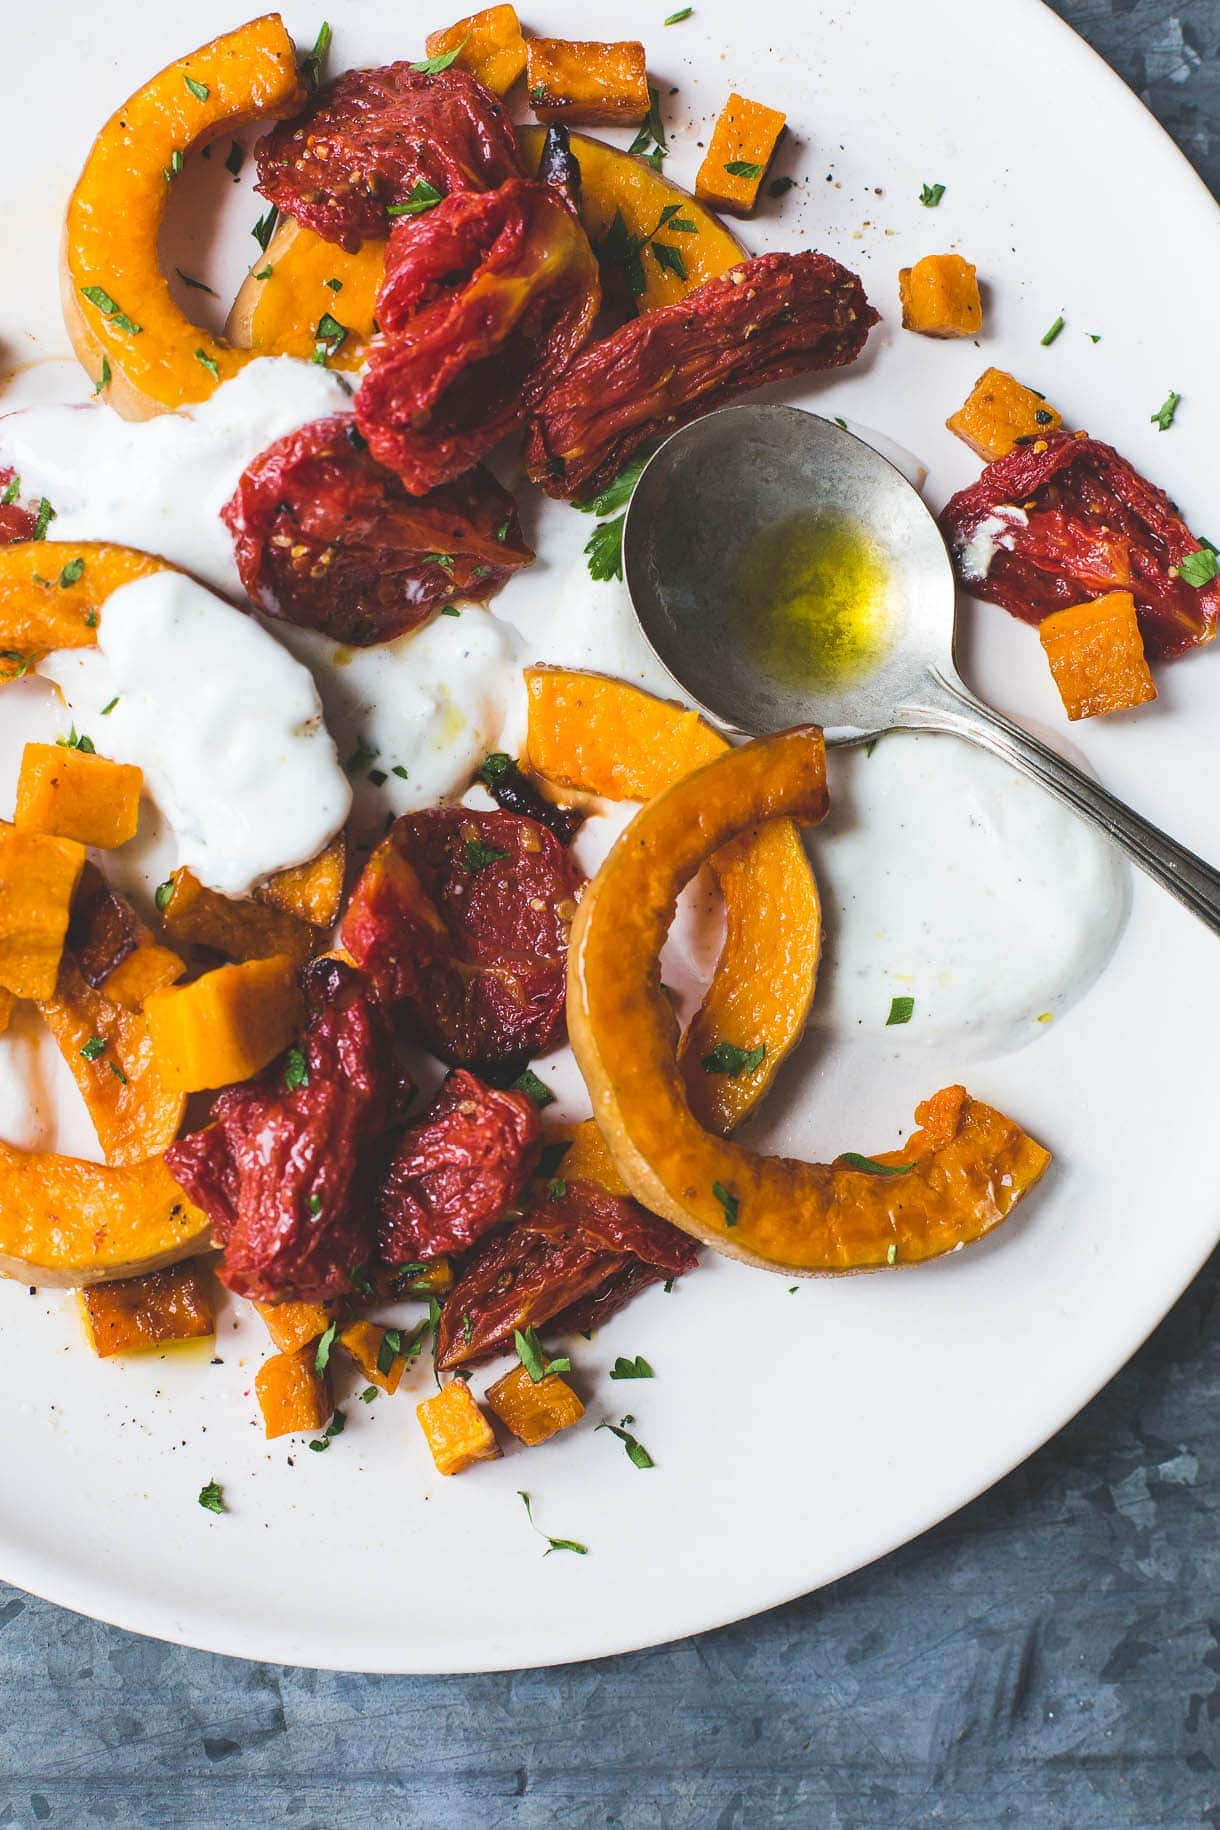 Roasted Tomatoes and Butternut Squash with Cardamom Yogurt Sauce {gluten-free, nut-free}